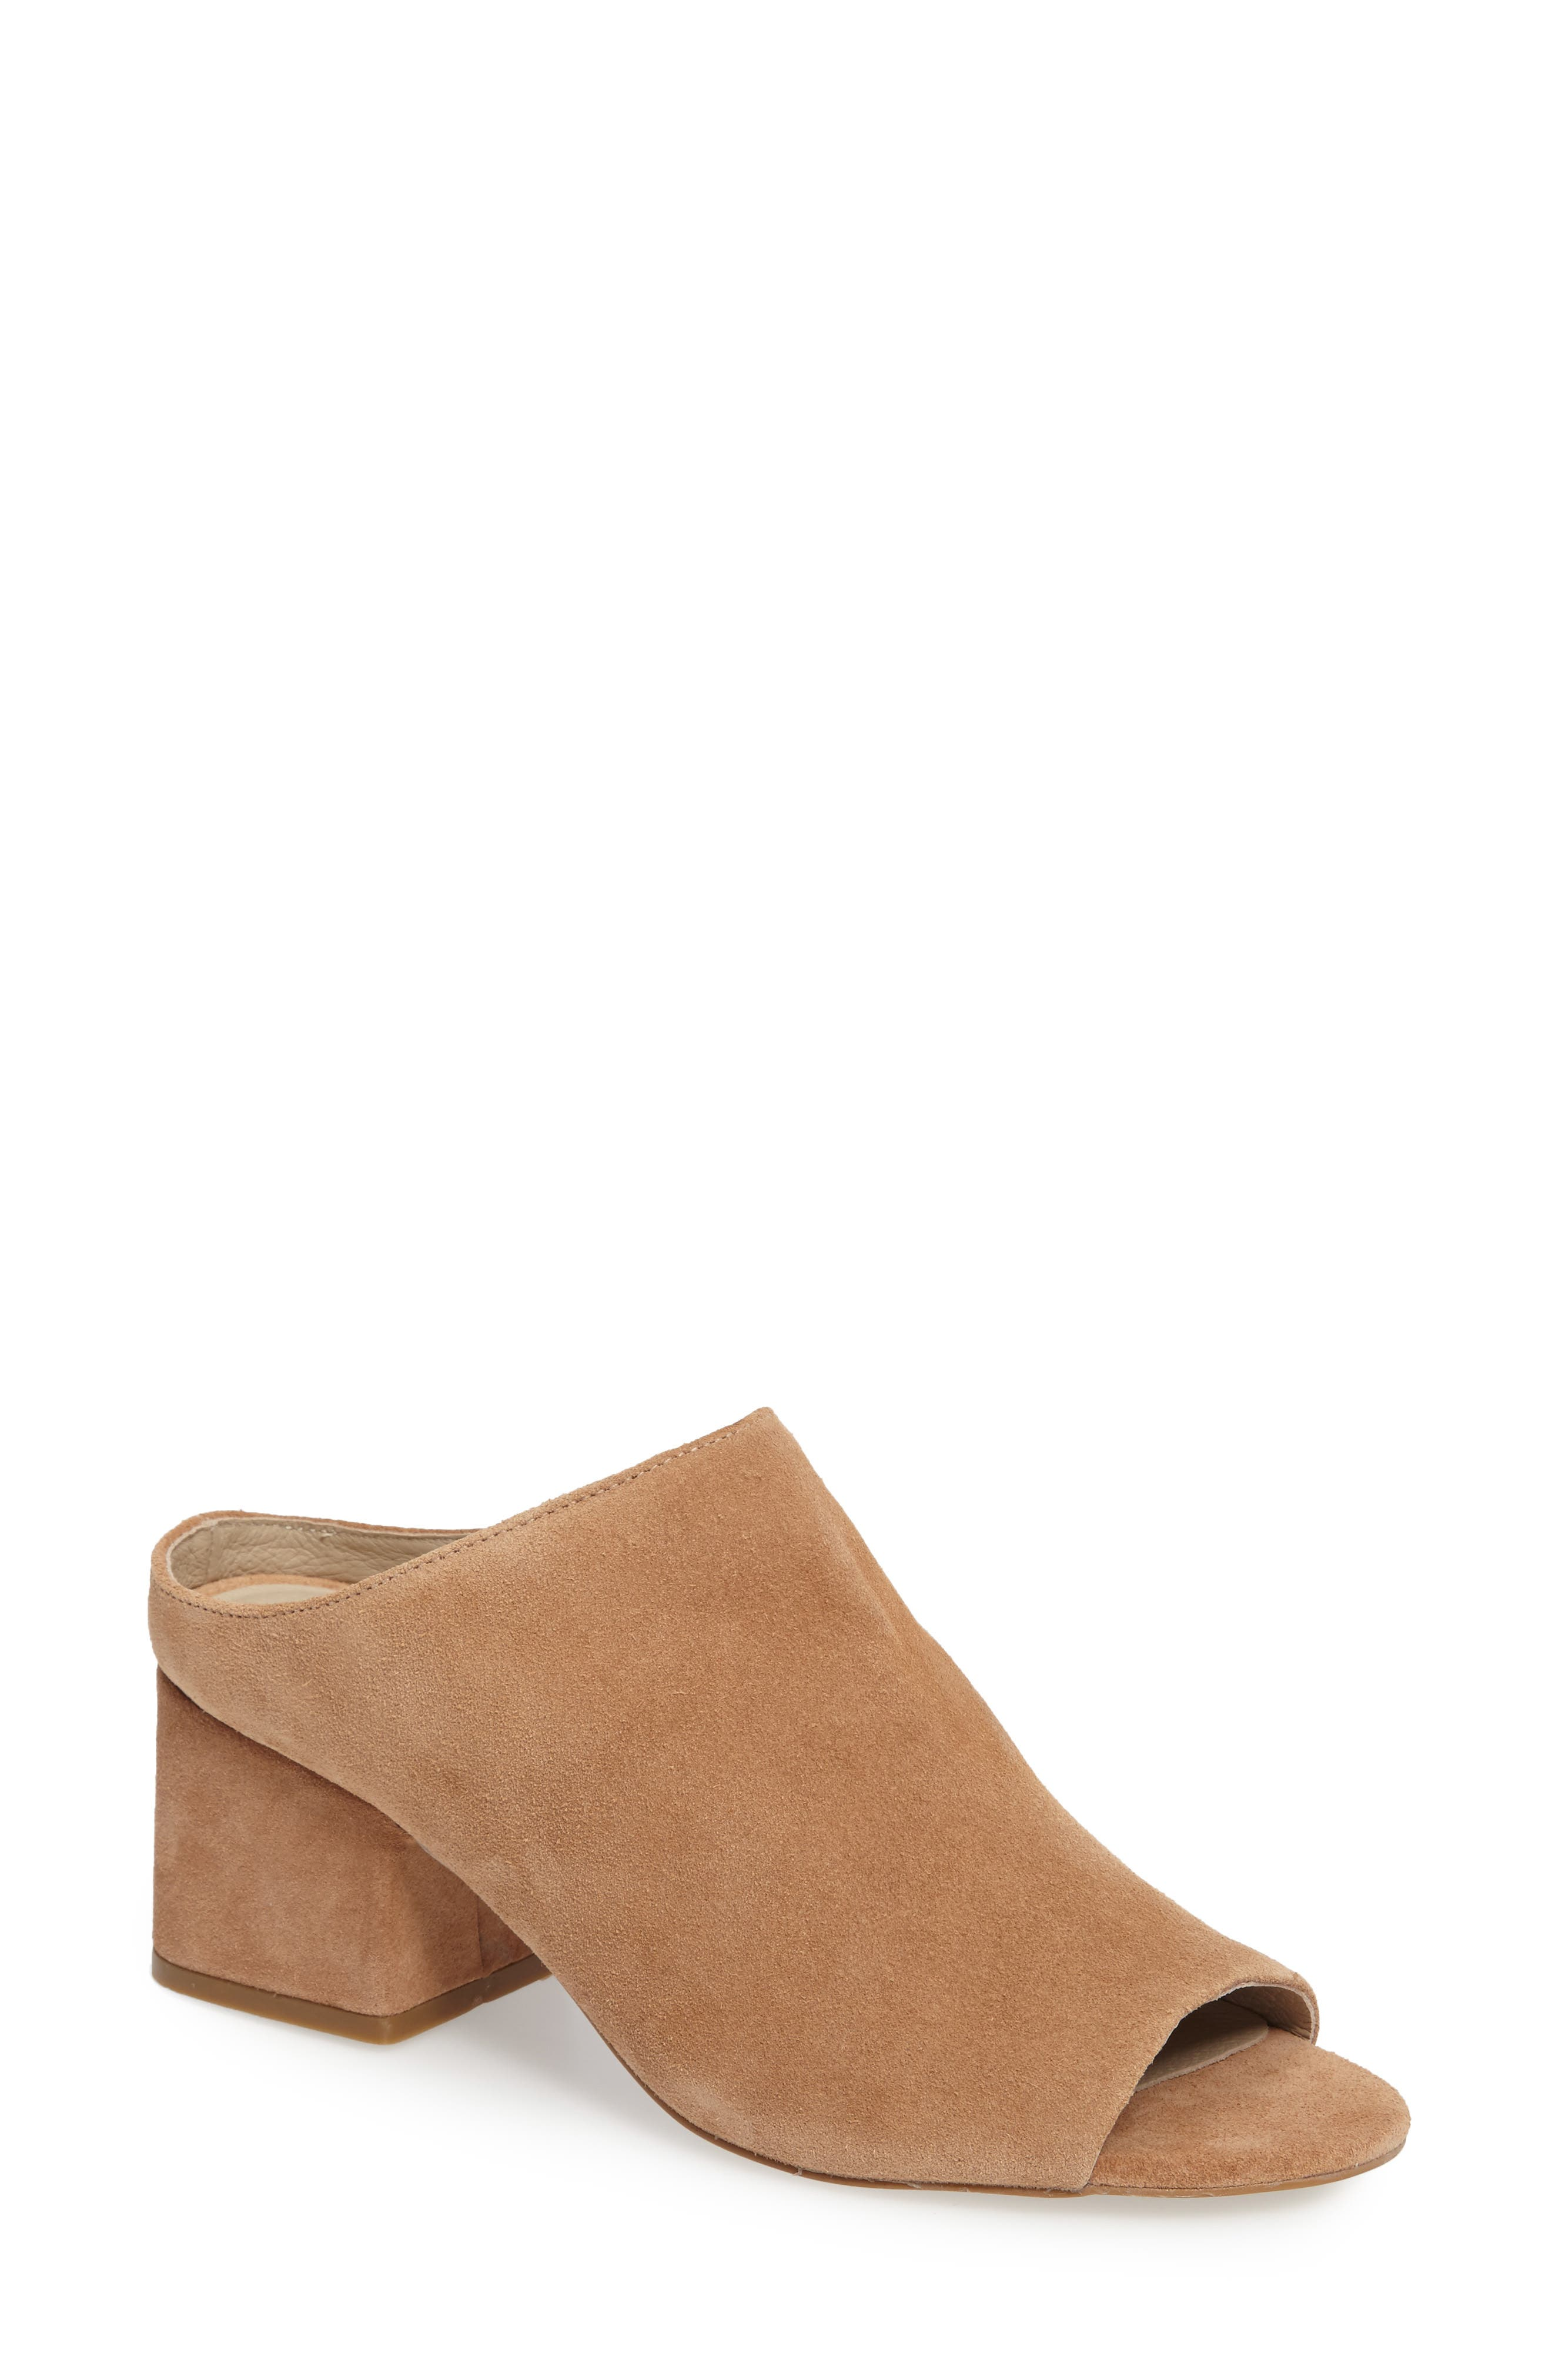 Misty Block Heel Mule,                             Main thumbnail 1, color,                             Natural Suede